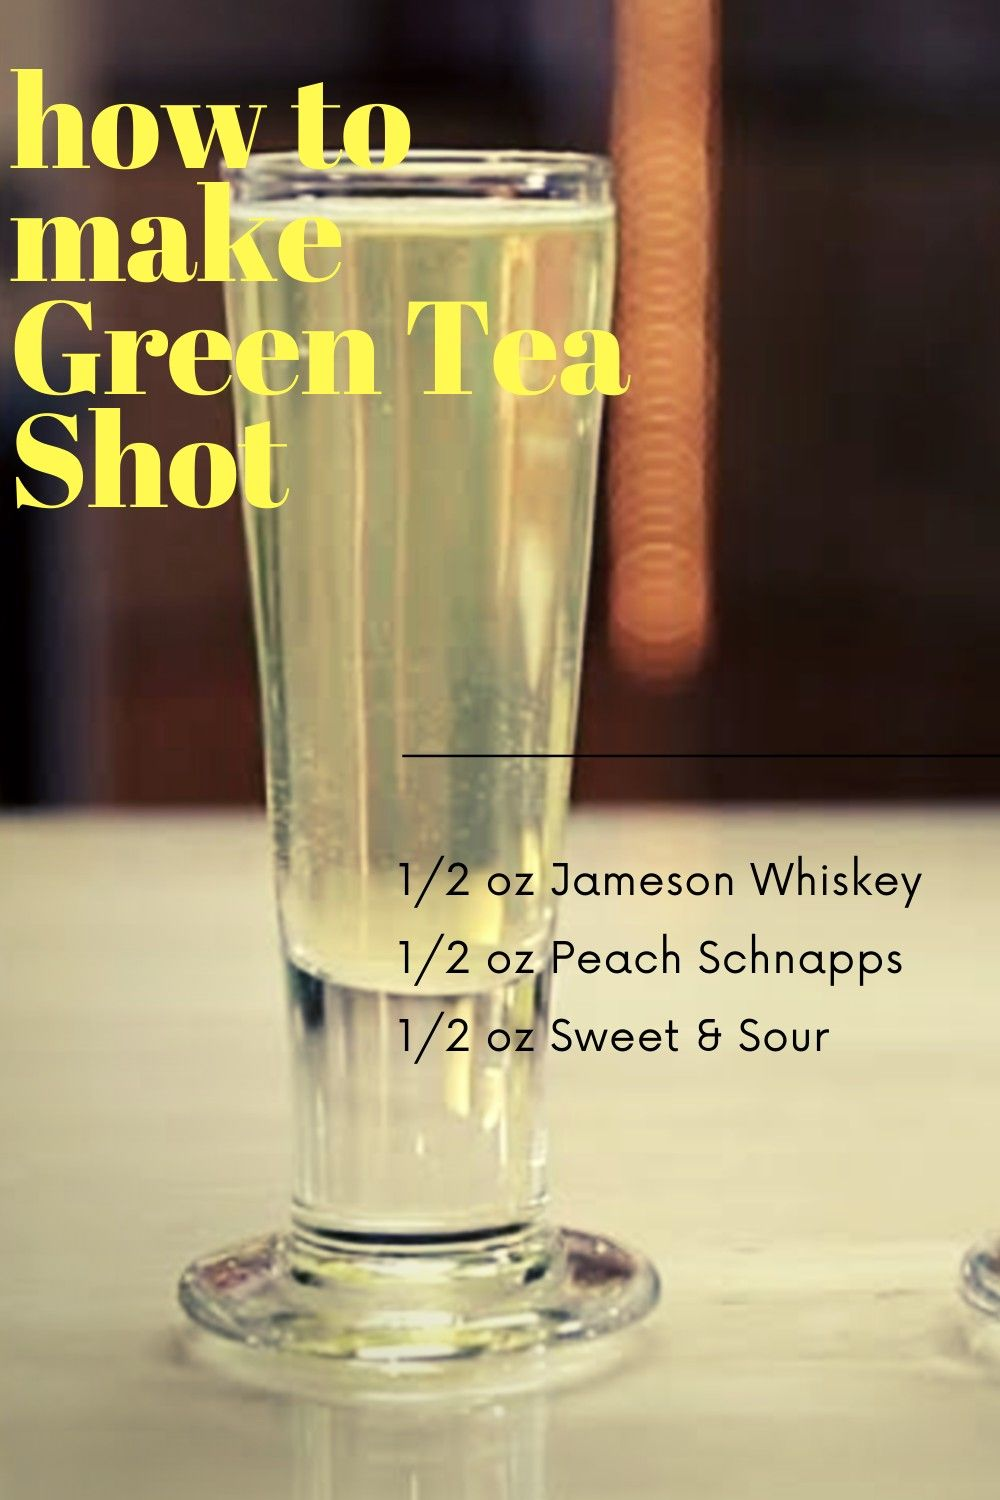 How To Make Green Tea Shot Easi Recipe In 2020 Green Tea Shot Shots Alcohol Green Tea Ingredients